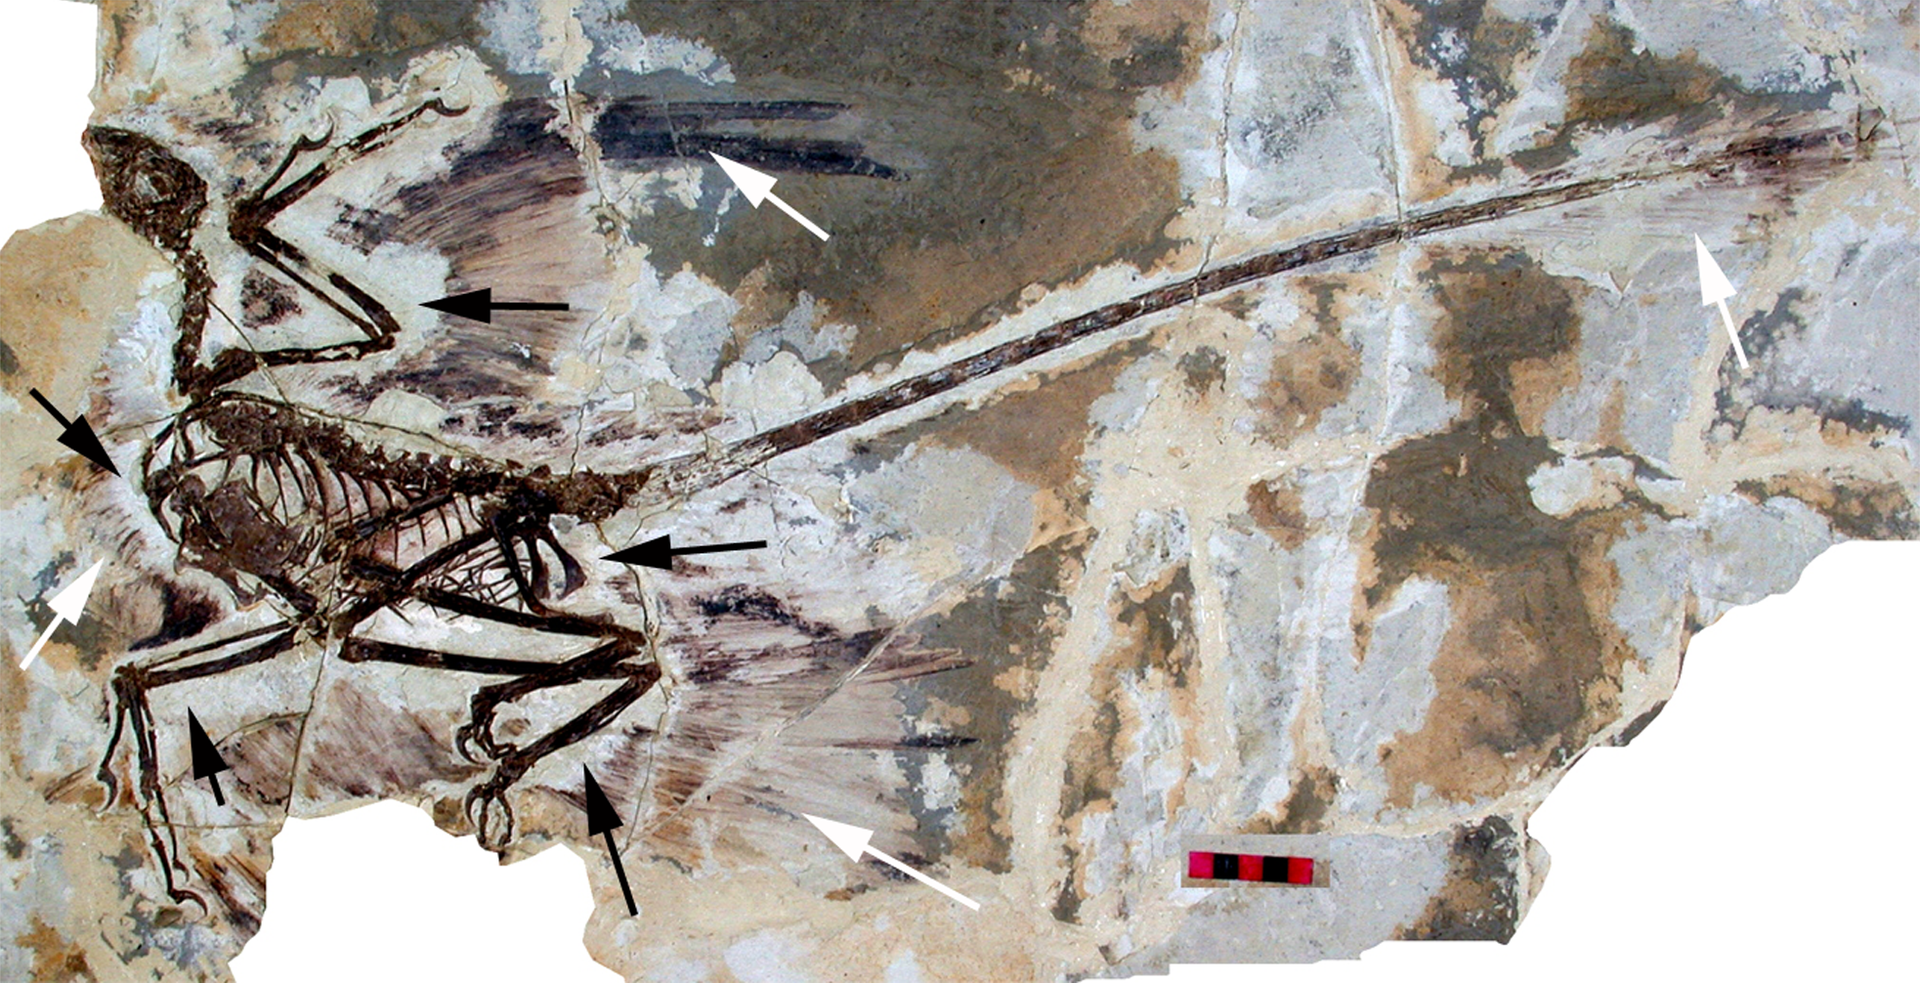 Gray and brown fossil of what appears to be a skeleton of a bird-like animal with feathers and a tail